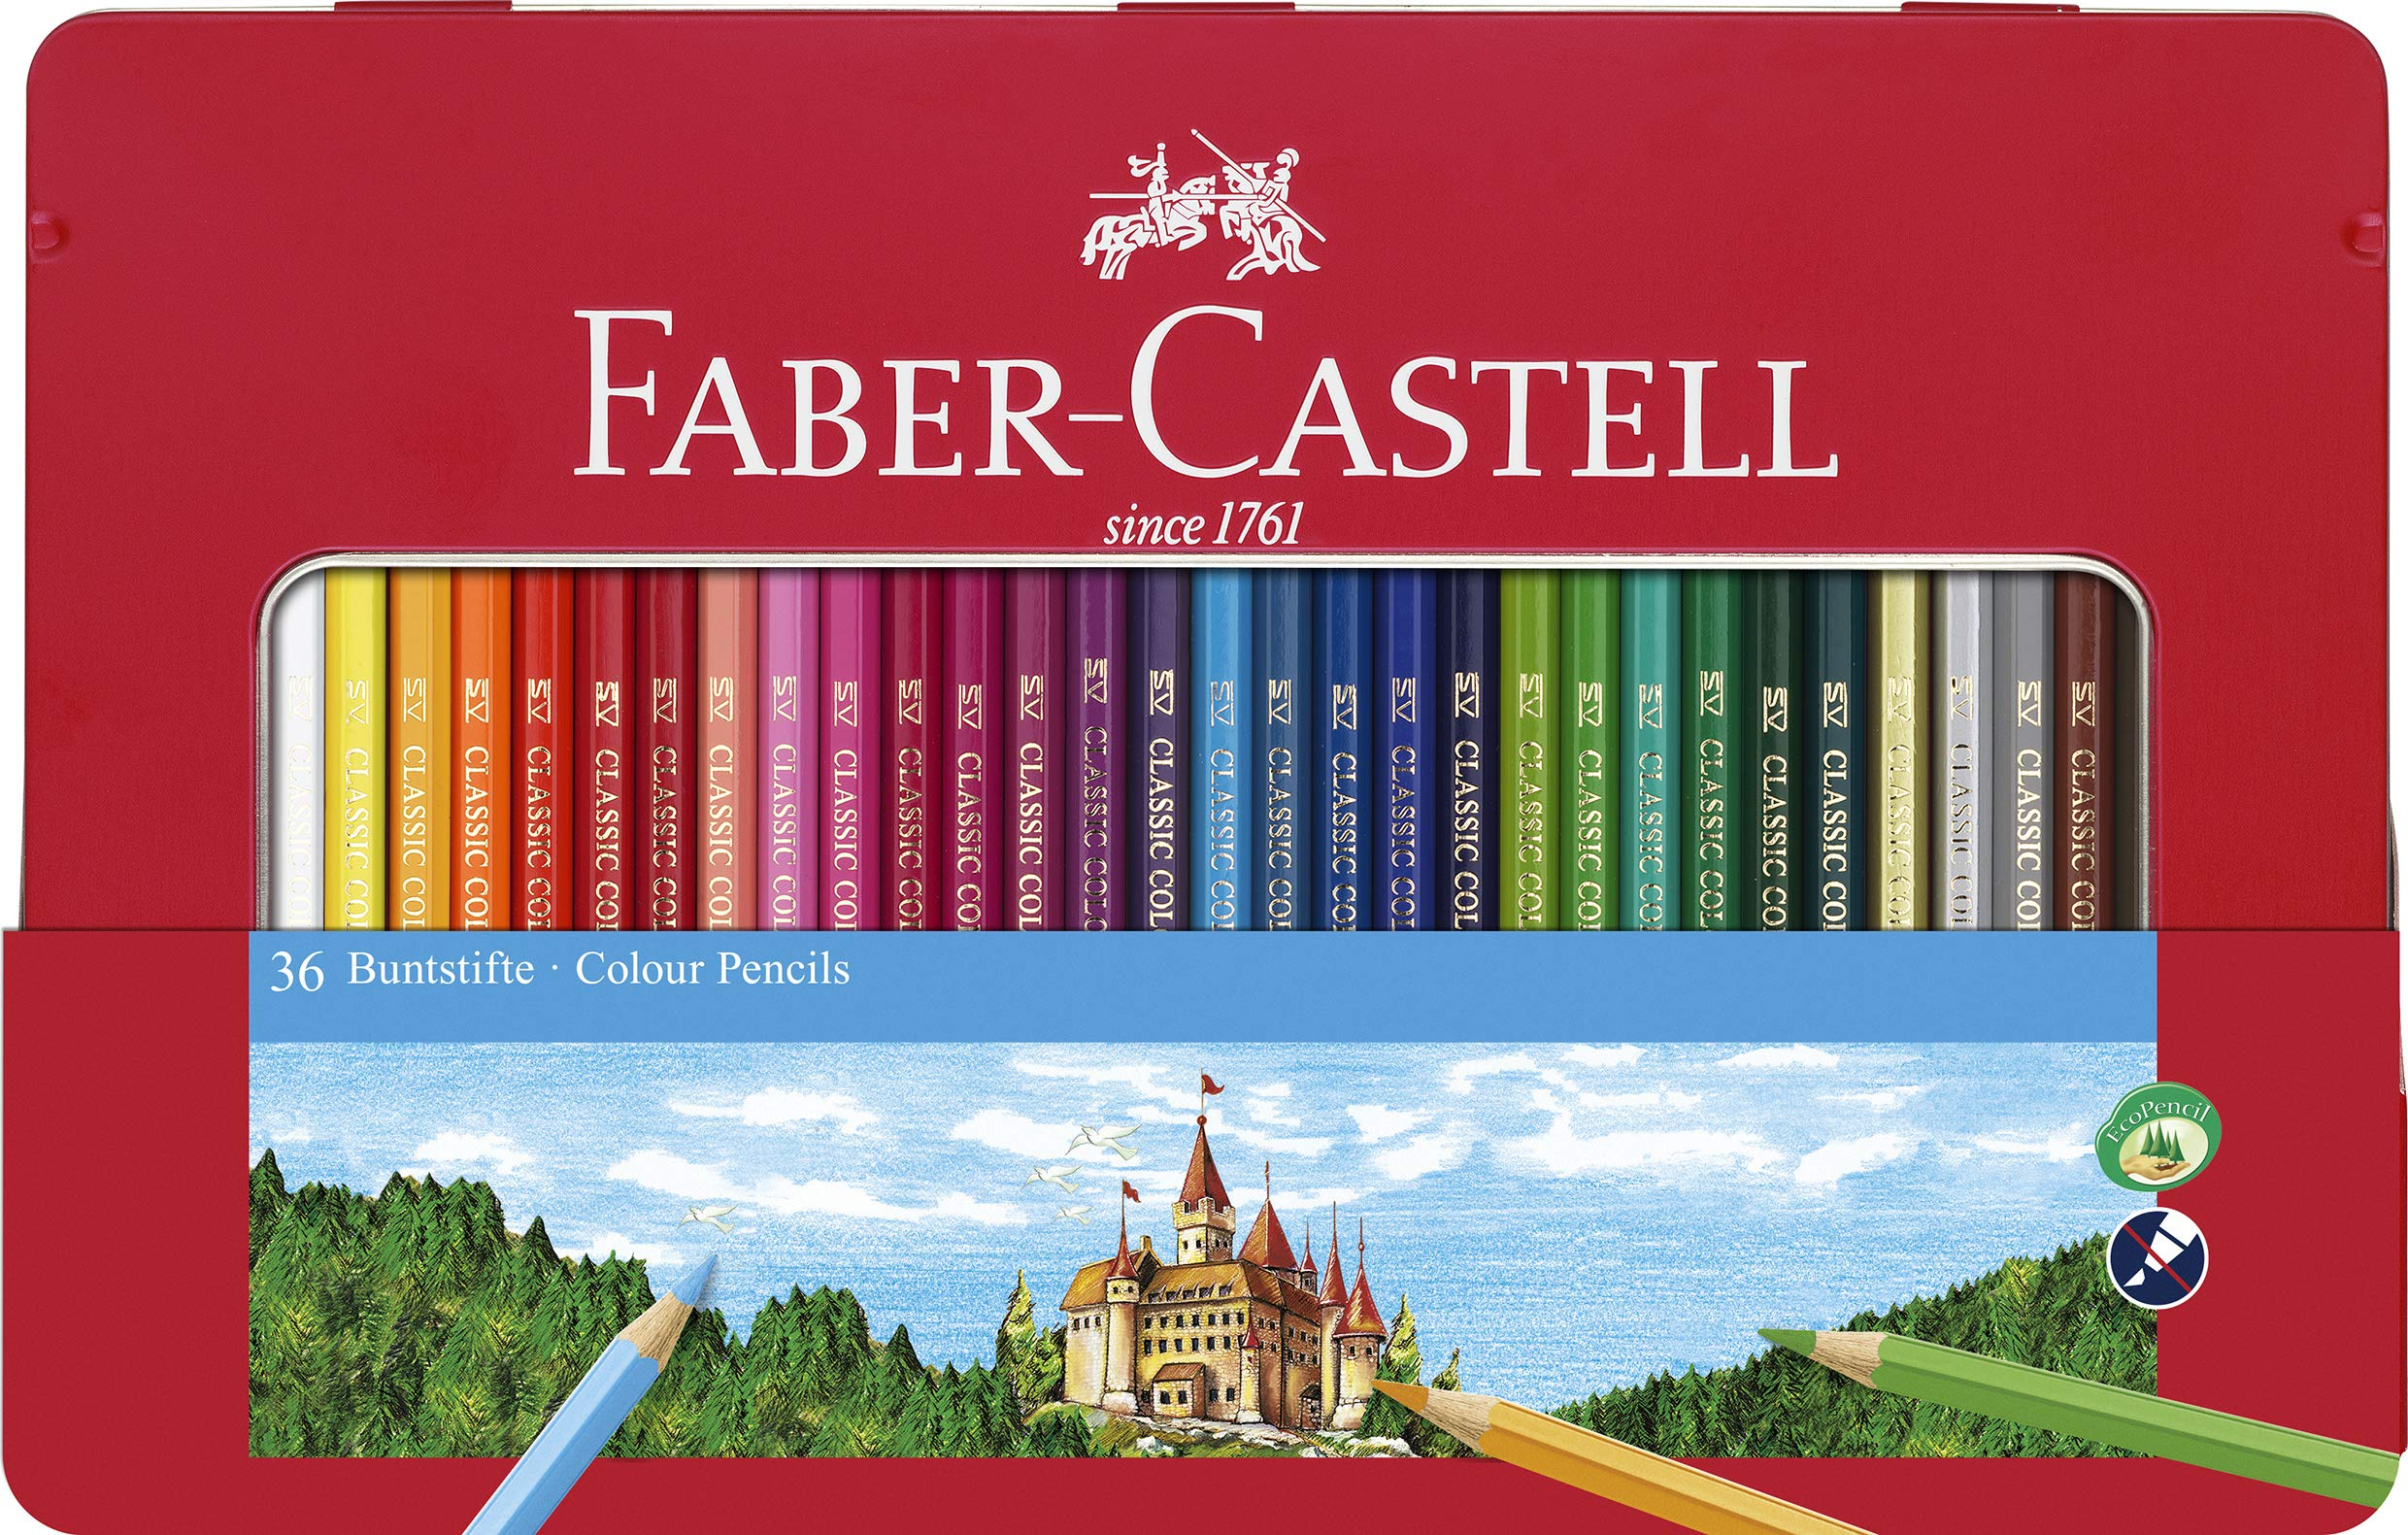 Faber-Castell 115886 – Estuche de metal con 36 lápices de colores, multicolor